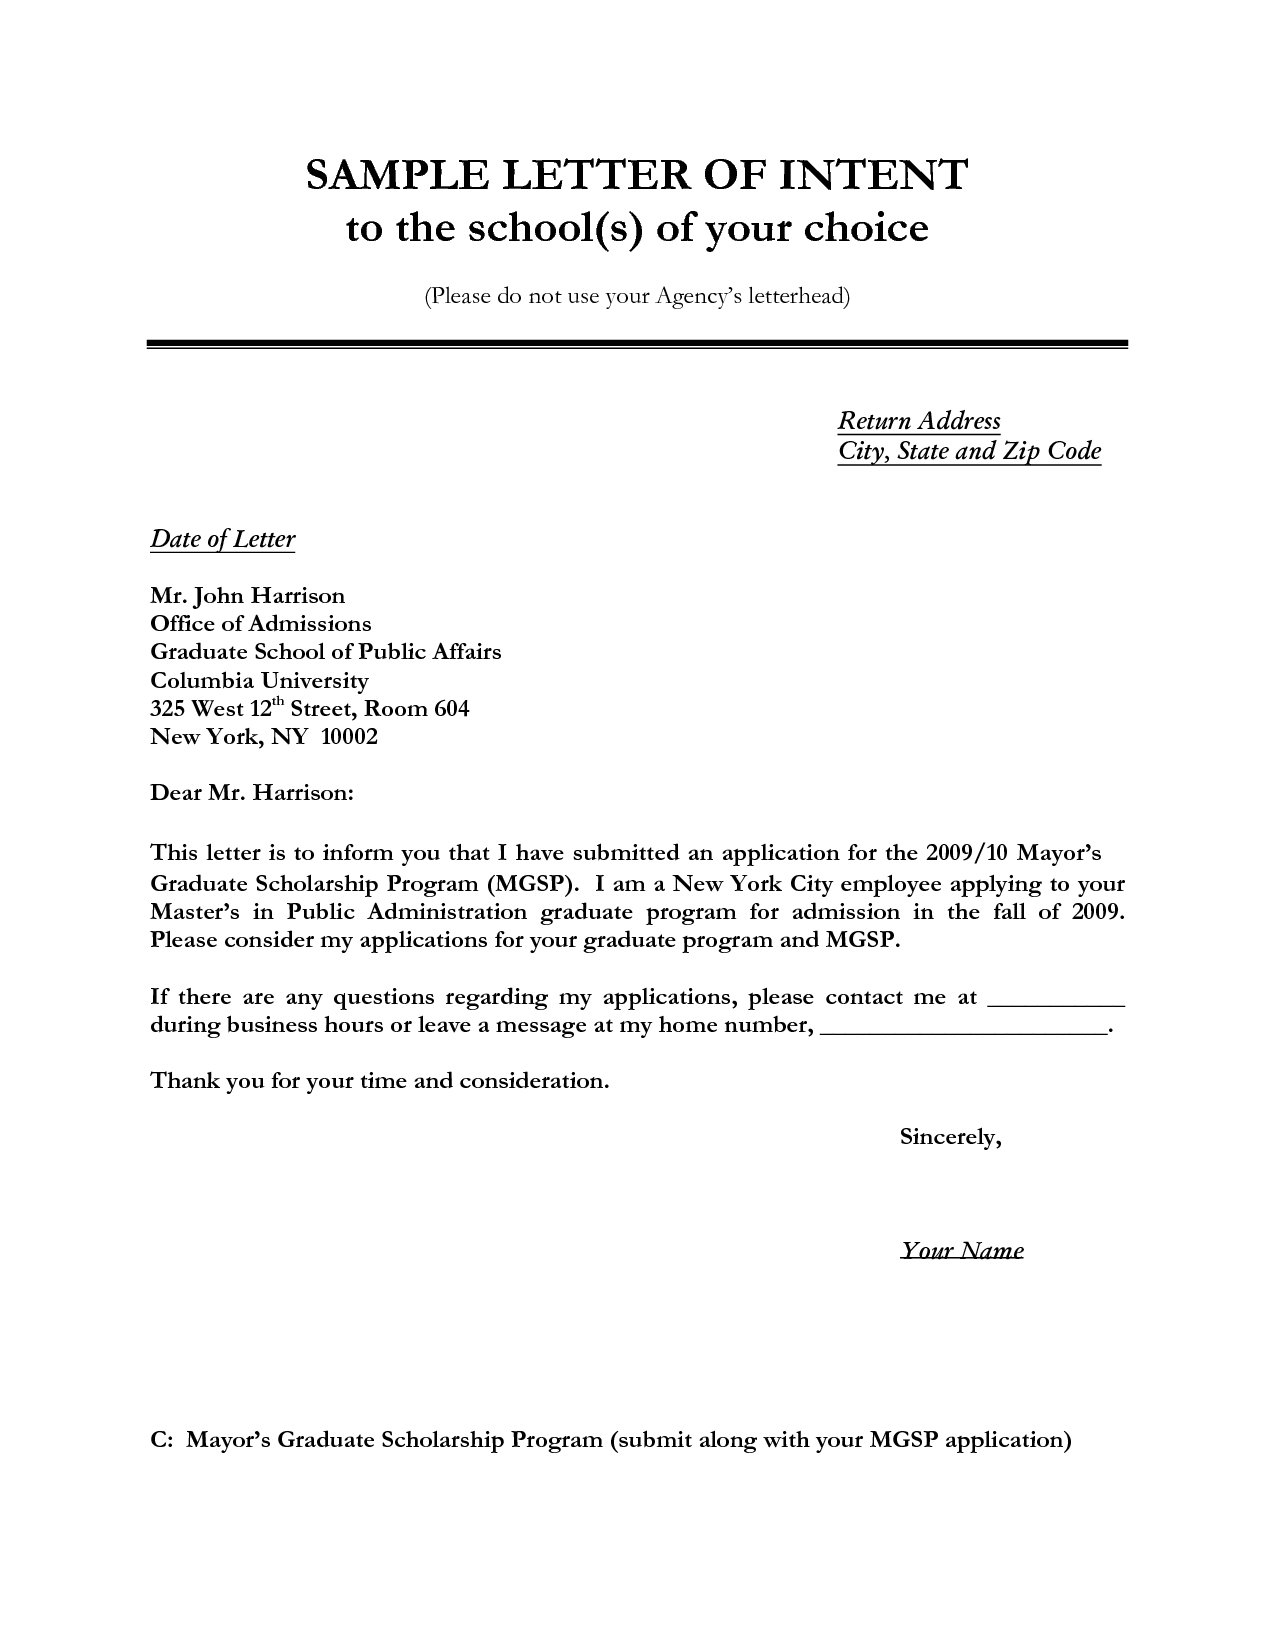 letter of intent to lease template free example-Letter of intent sample 16-j